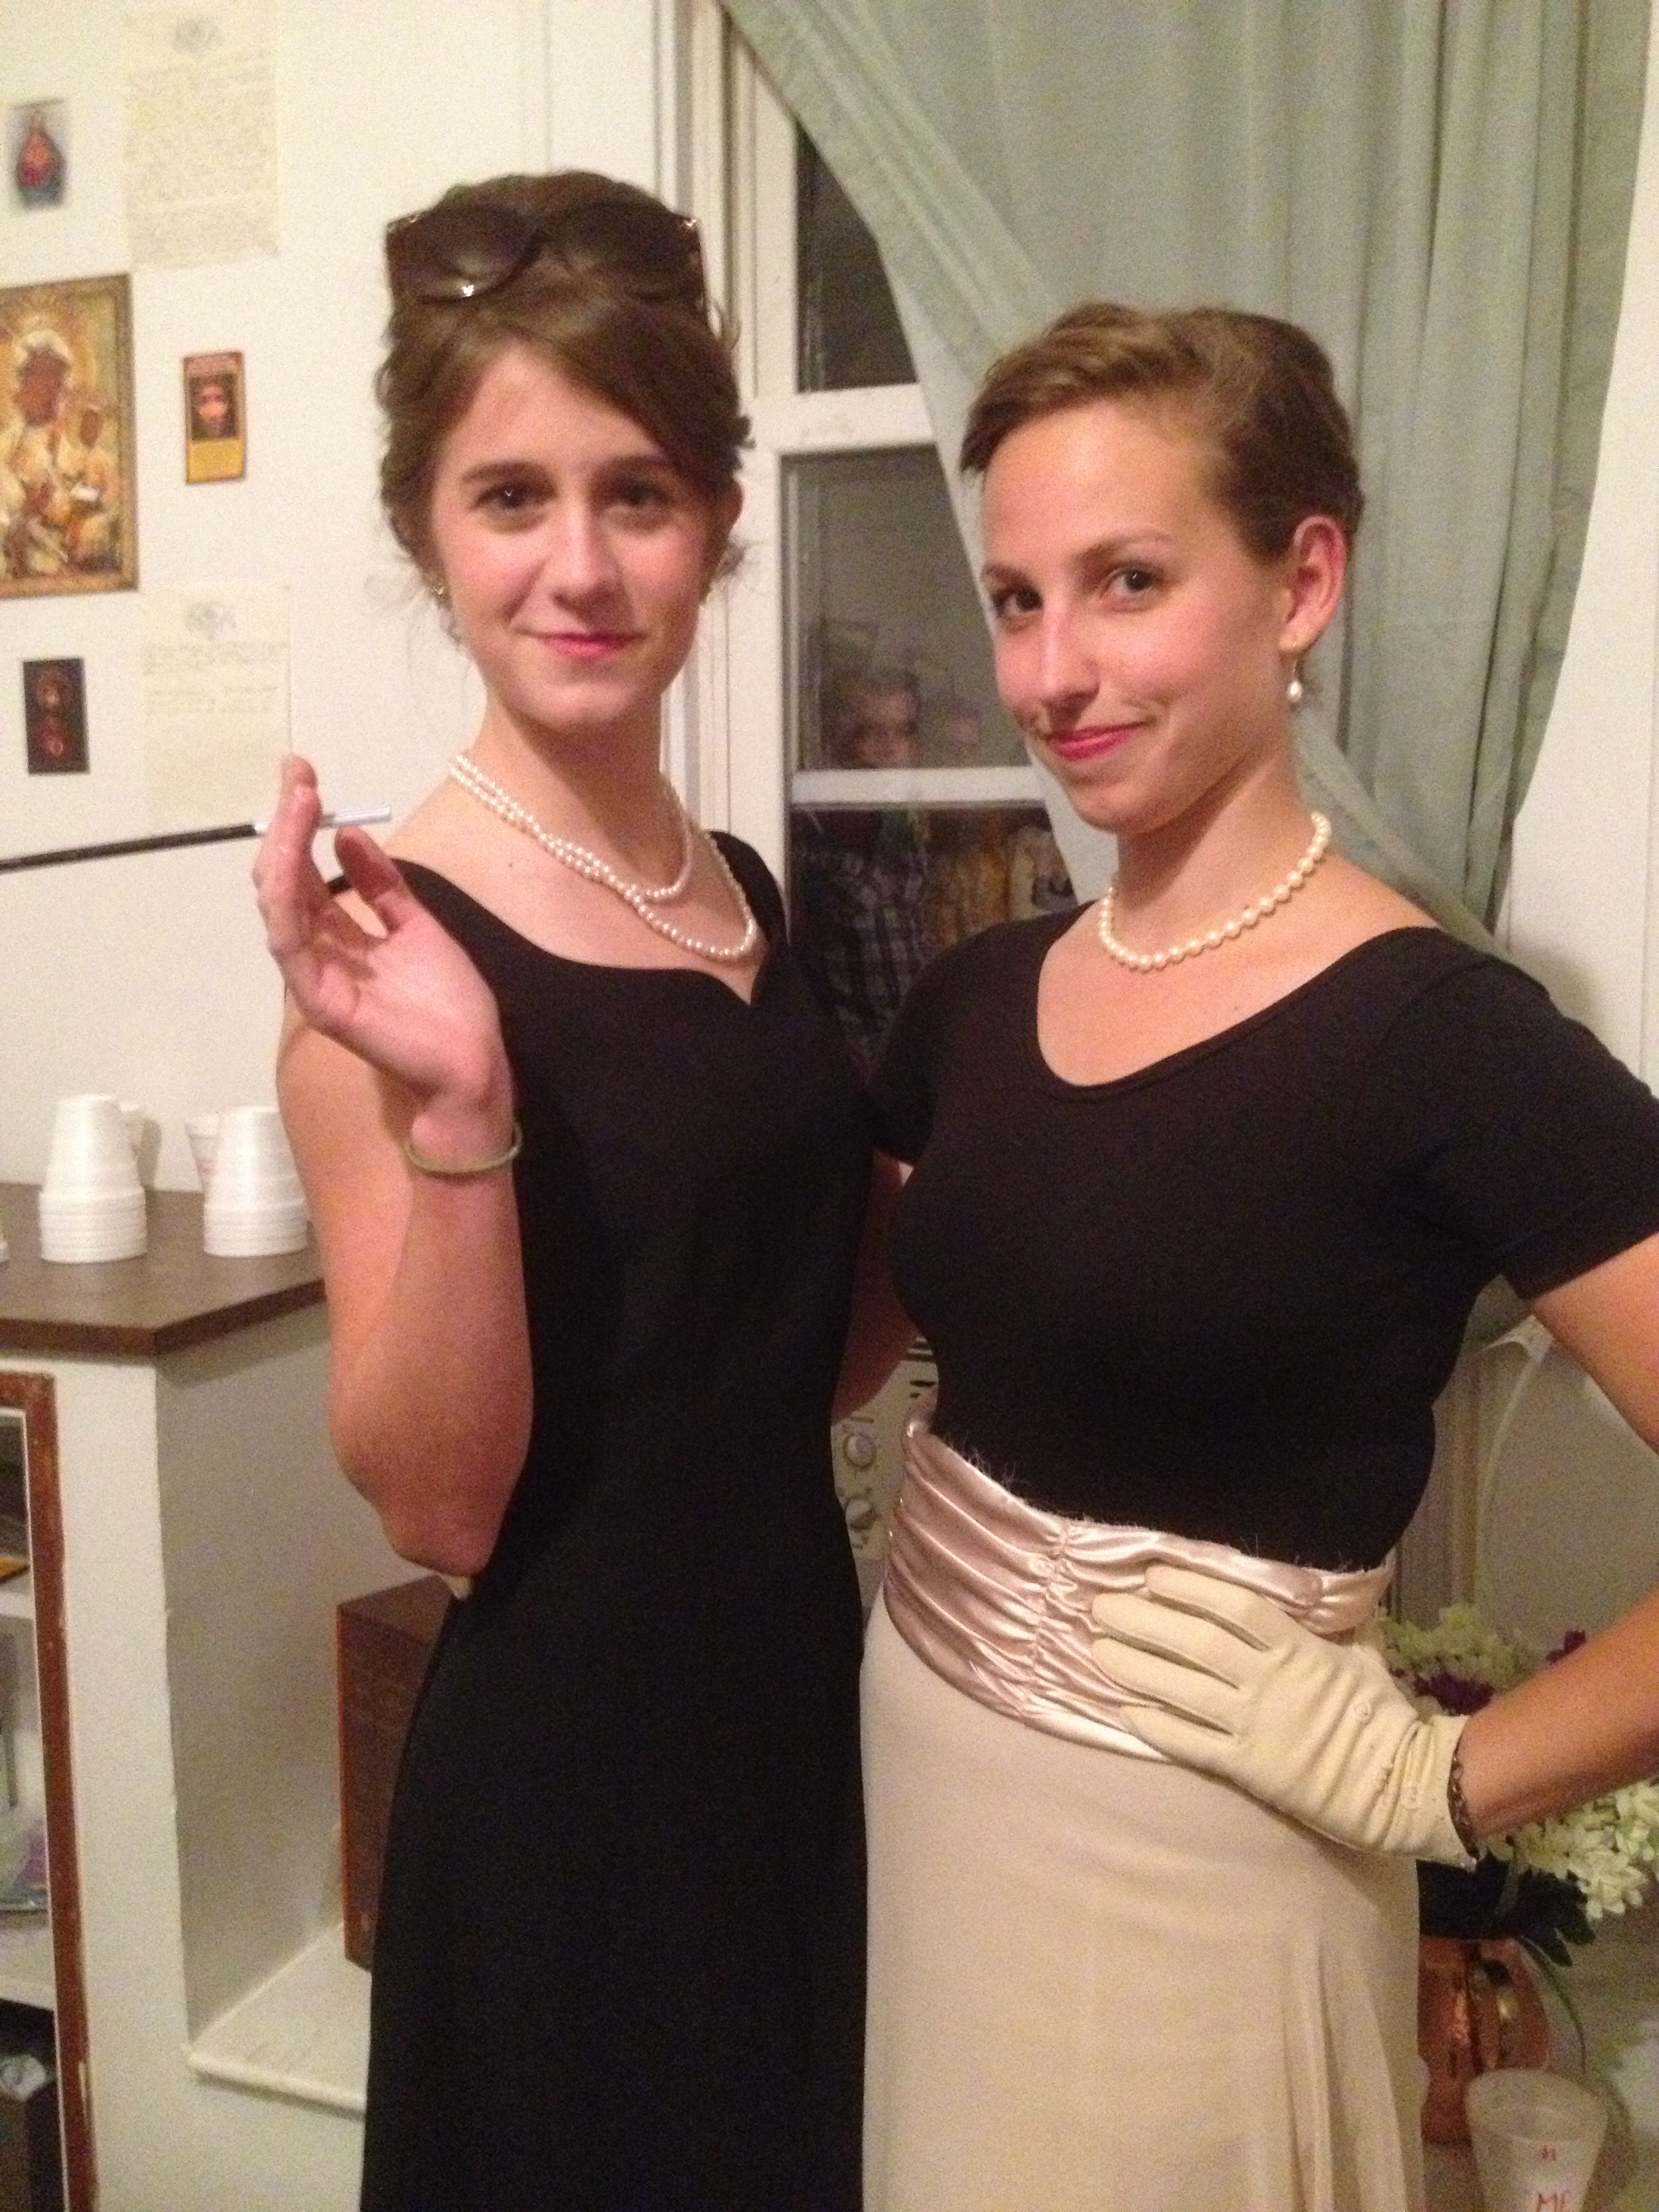 This is my friend Sarah and me.  Almost every part of our entire Audrey Hepburn and Grace Kelly outfits were from thrift stores.  I'm wearing Sarah's black leotard, but my skirt is the bottom half of a dress that I cut to look like a famous Grace Kelly picture.  The creepy men in the window are not from a thrift store.